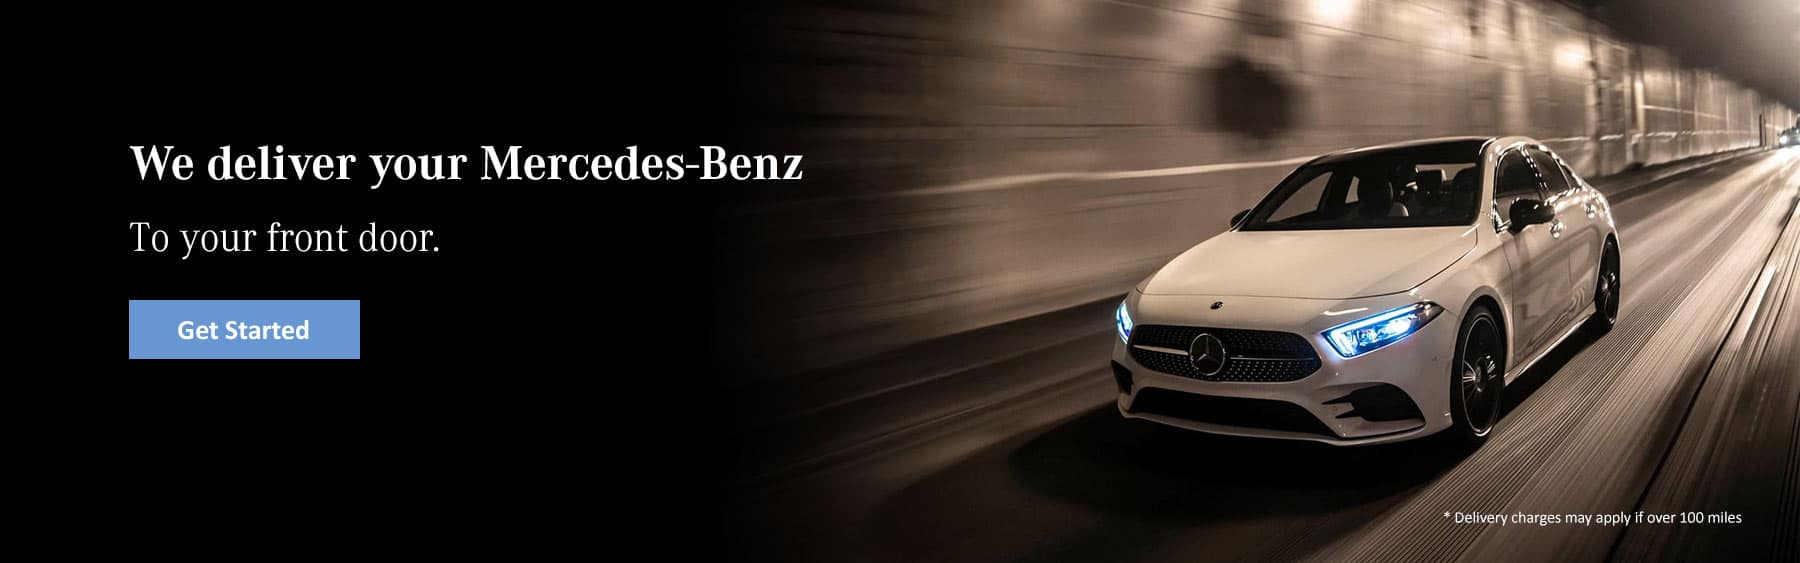 mercedes-benz home delivery in oregon